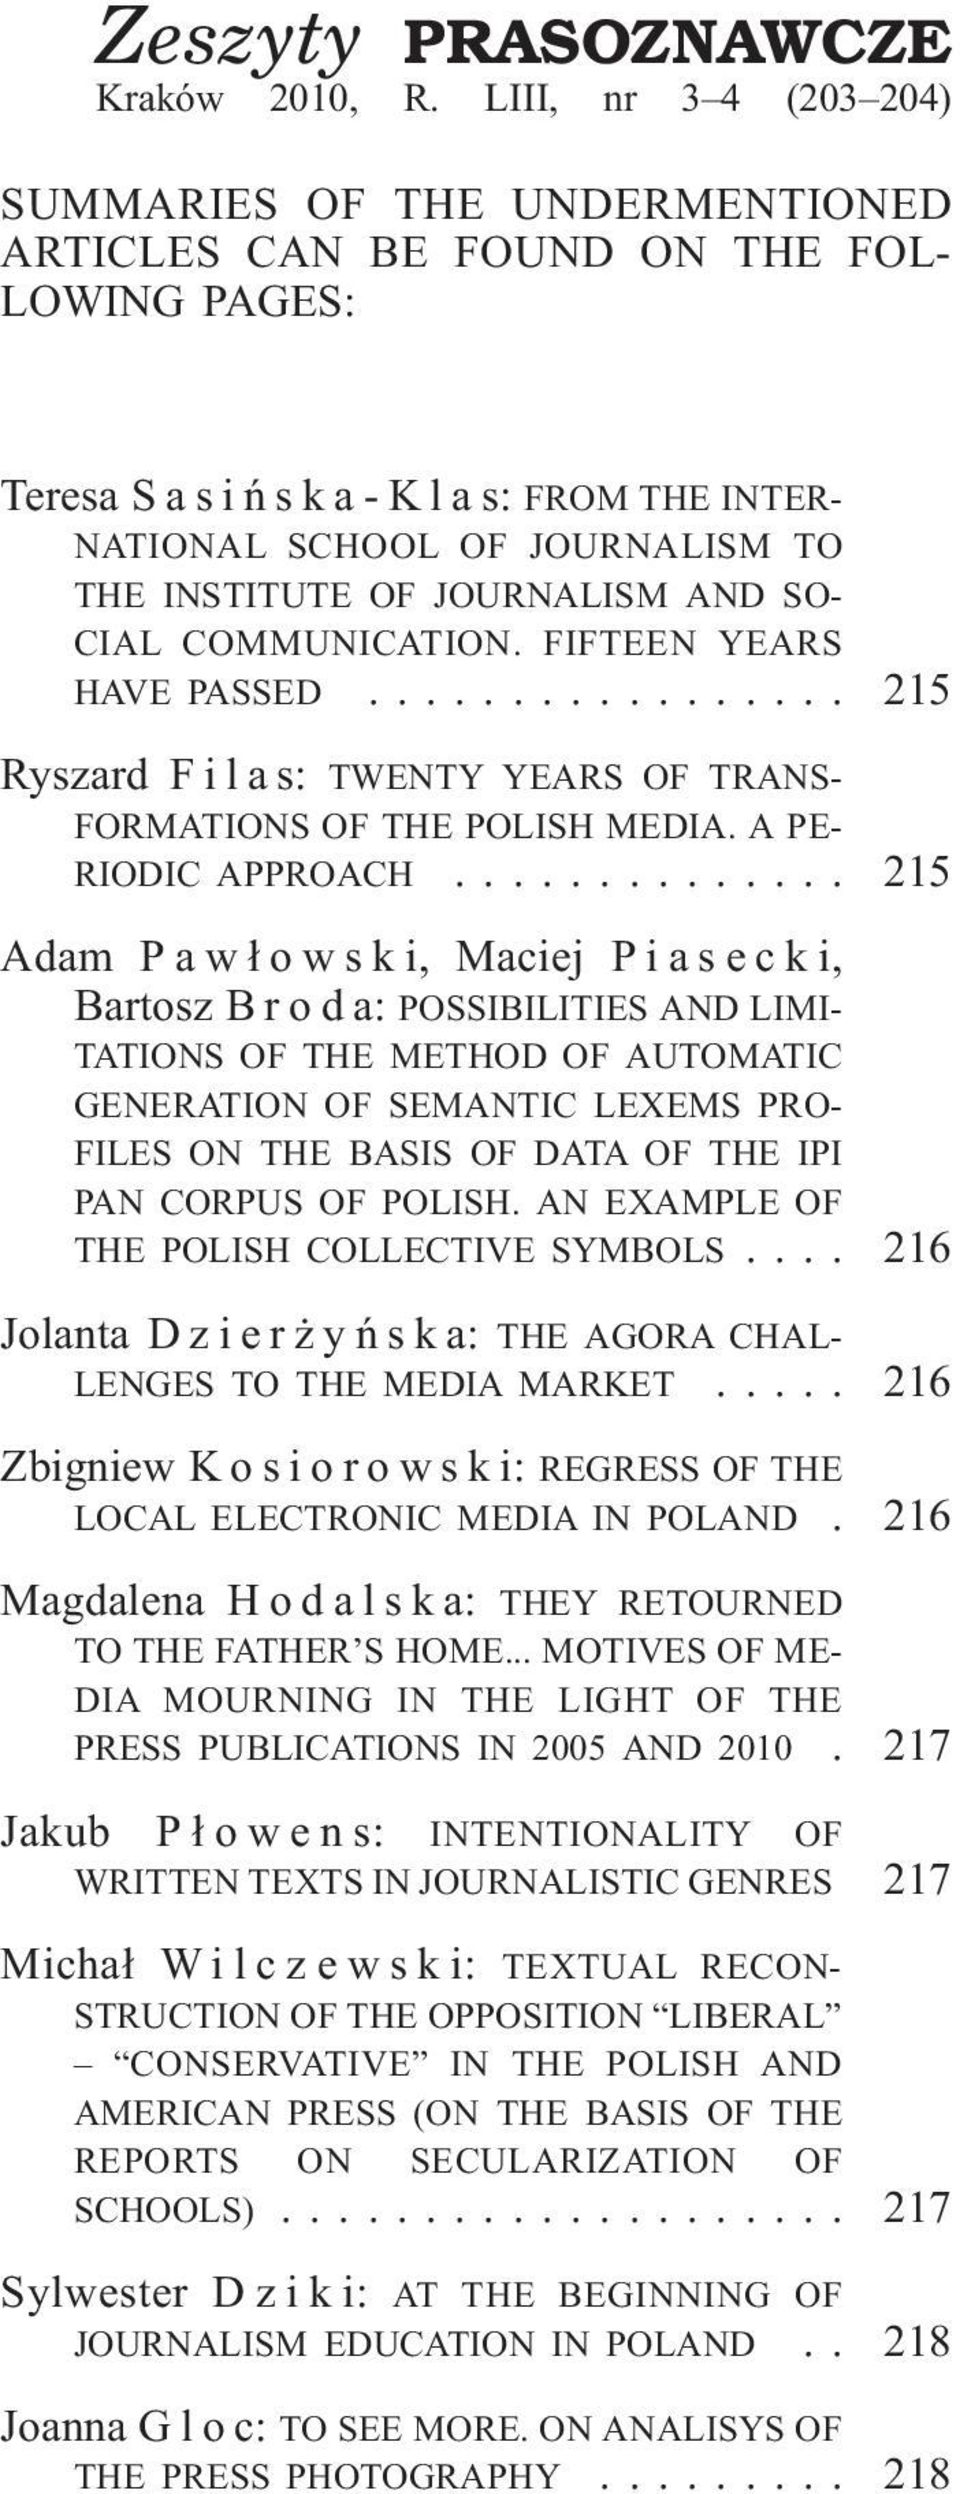 JOURNALISM AND SO- CIAL COMMUNICATION. FIFTEEN YEARS HAVE PASSED... 215 Ryszard Filas: TWENTY YEARS OF TRANS- FORMATIONS OF THE POLISH MEDIA. A PE- RIODIC APPROACH.